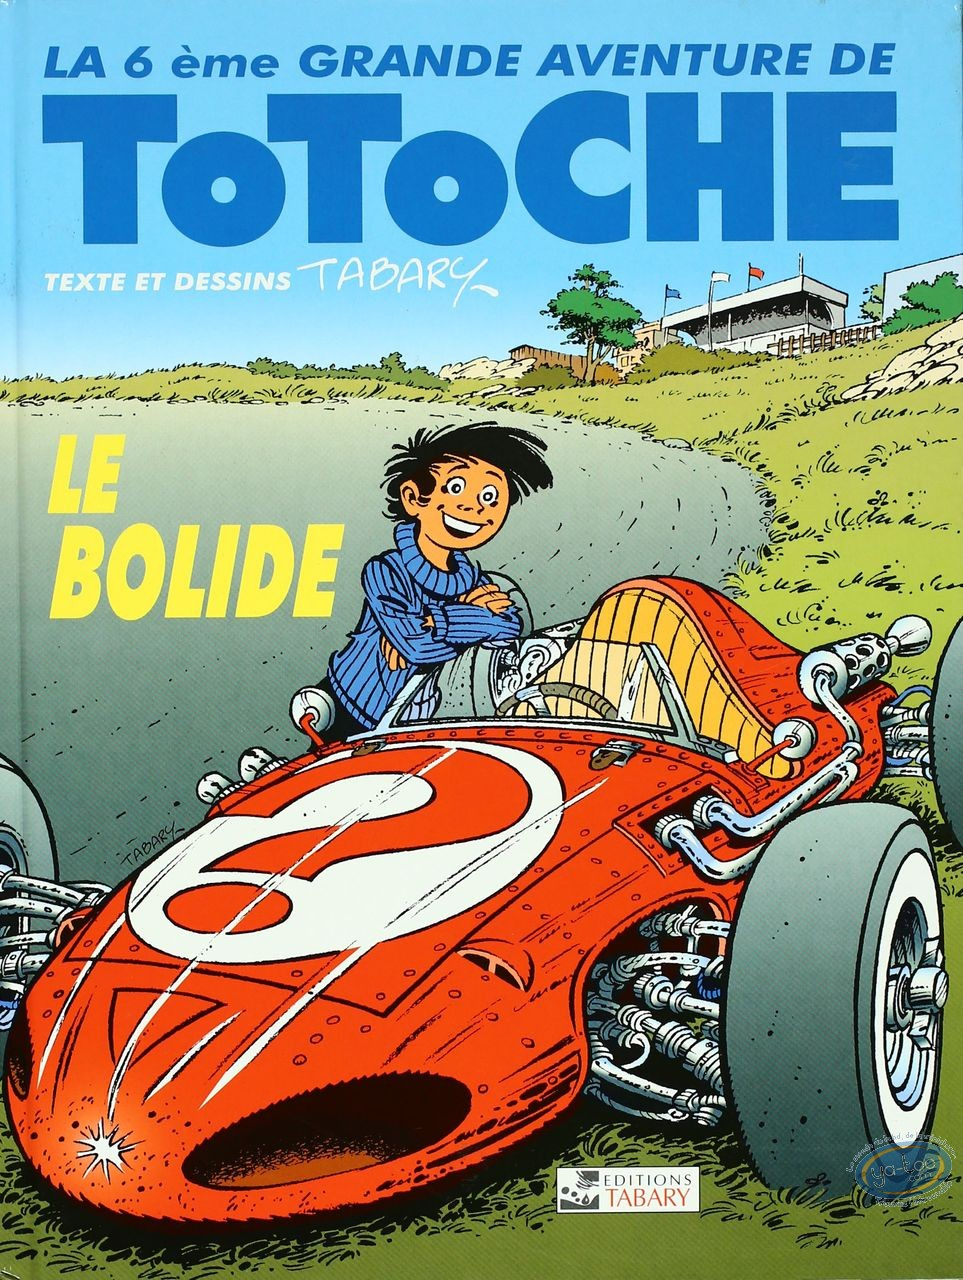 Reduced price European comic books, Totoche : The racing car - The great adventures of Totoche Volume 6